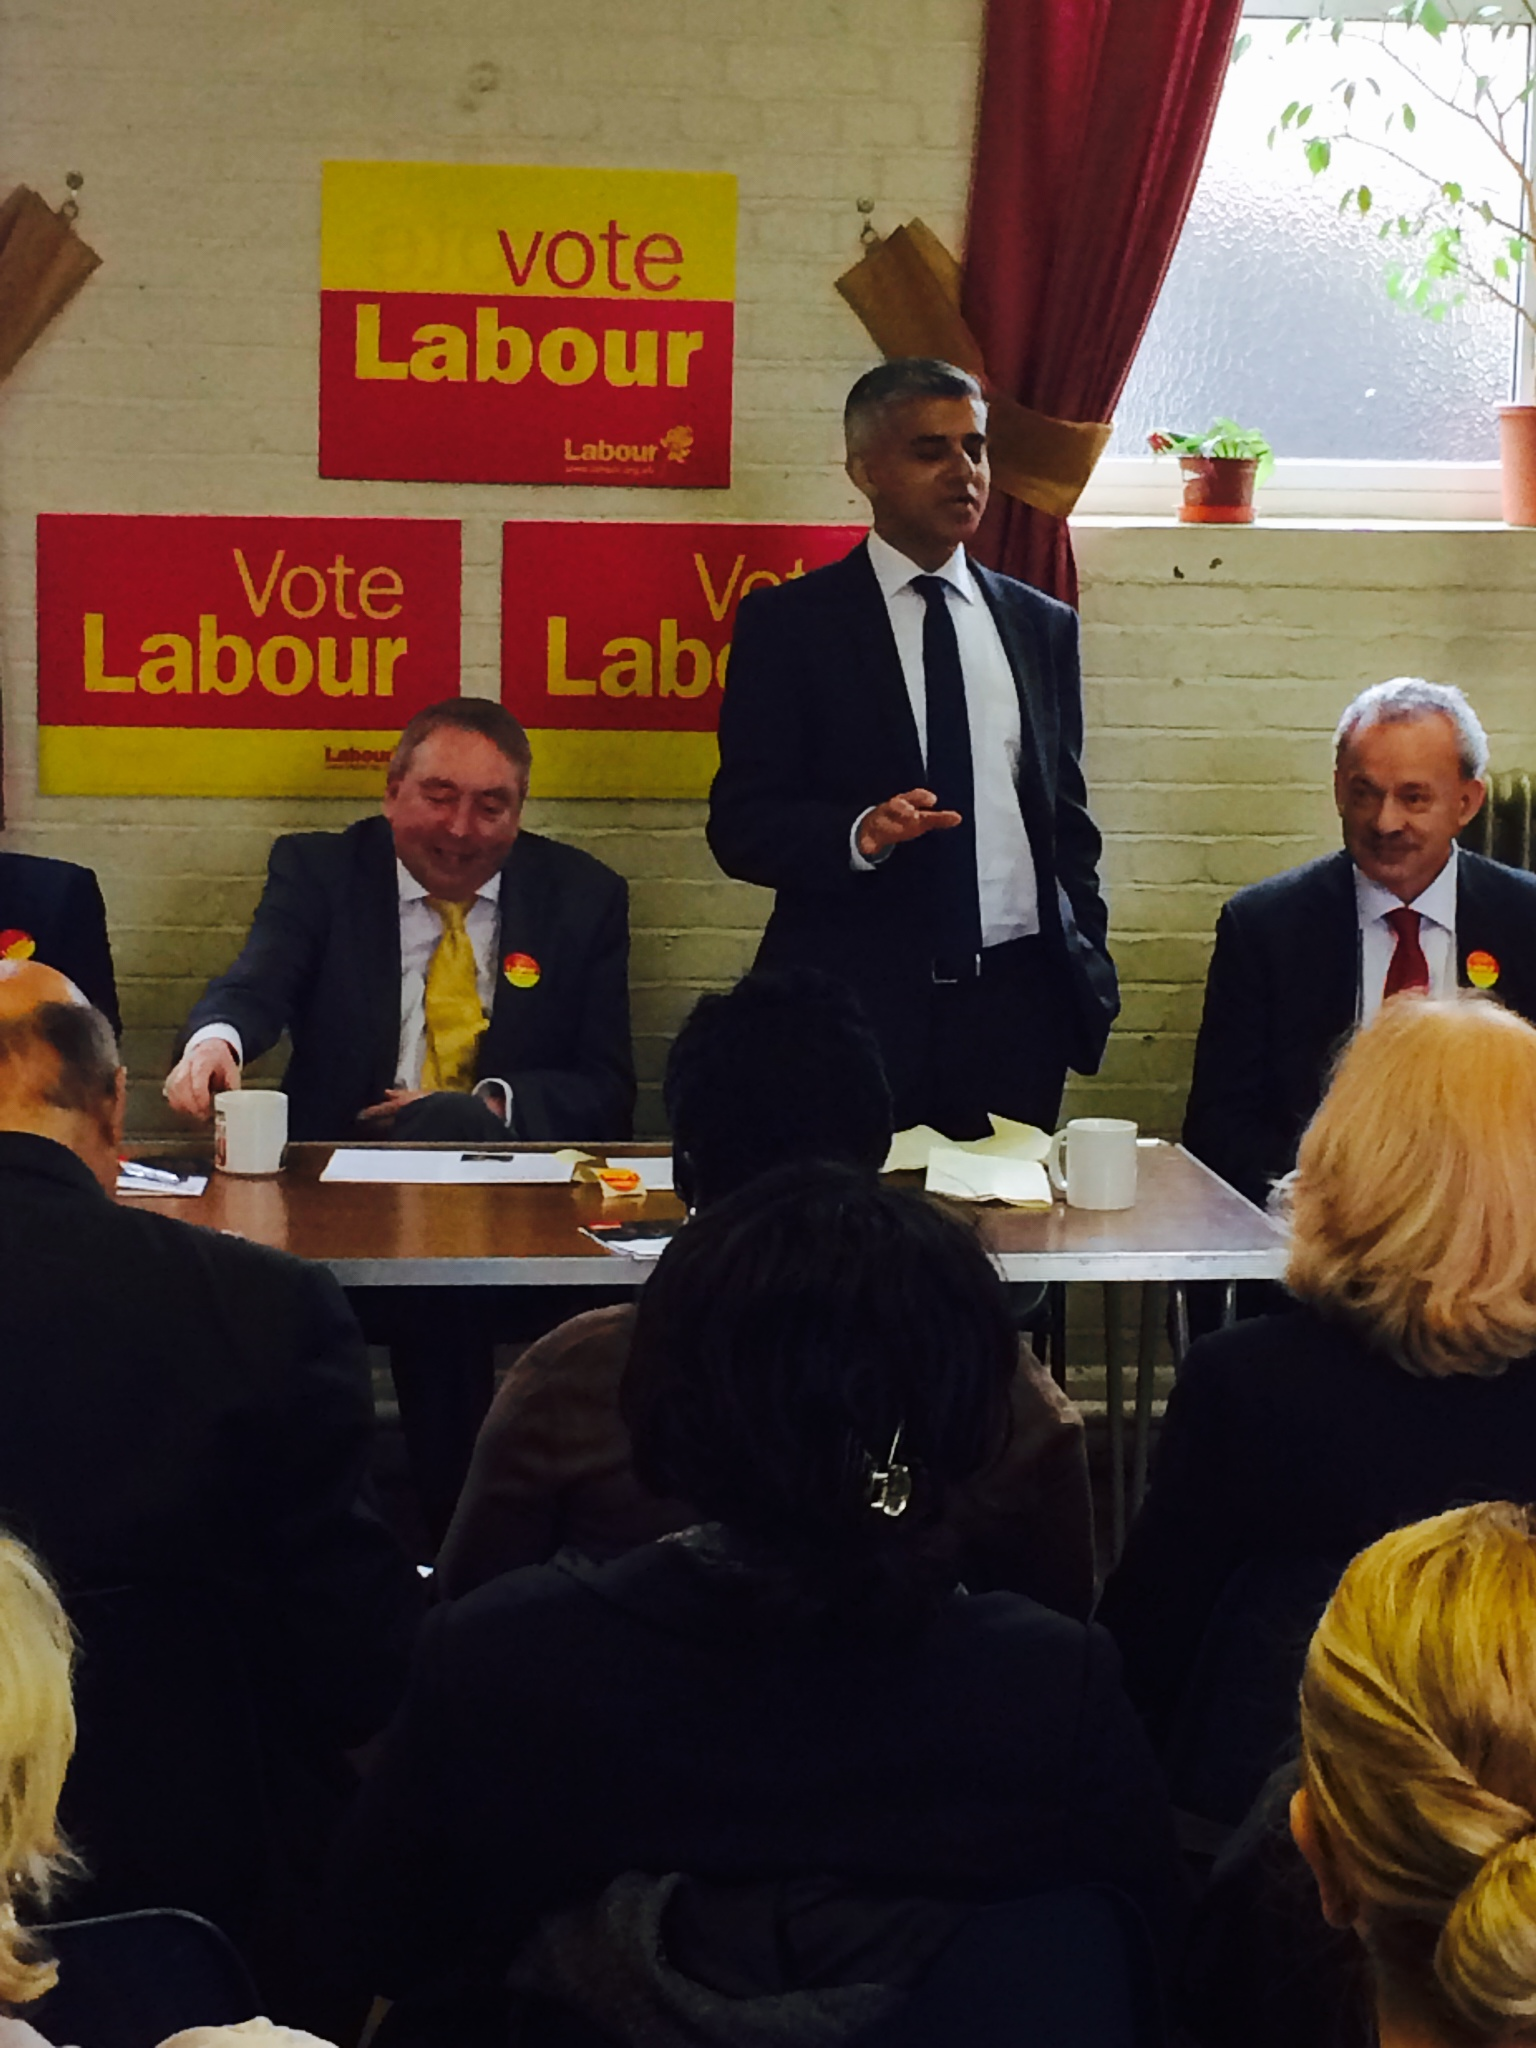 Sadiq Khan MP, shadow minister for London at the launch of Labour Enfield's manifesto